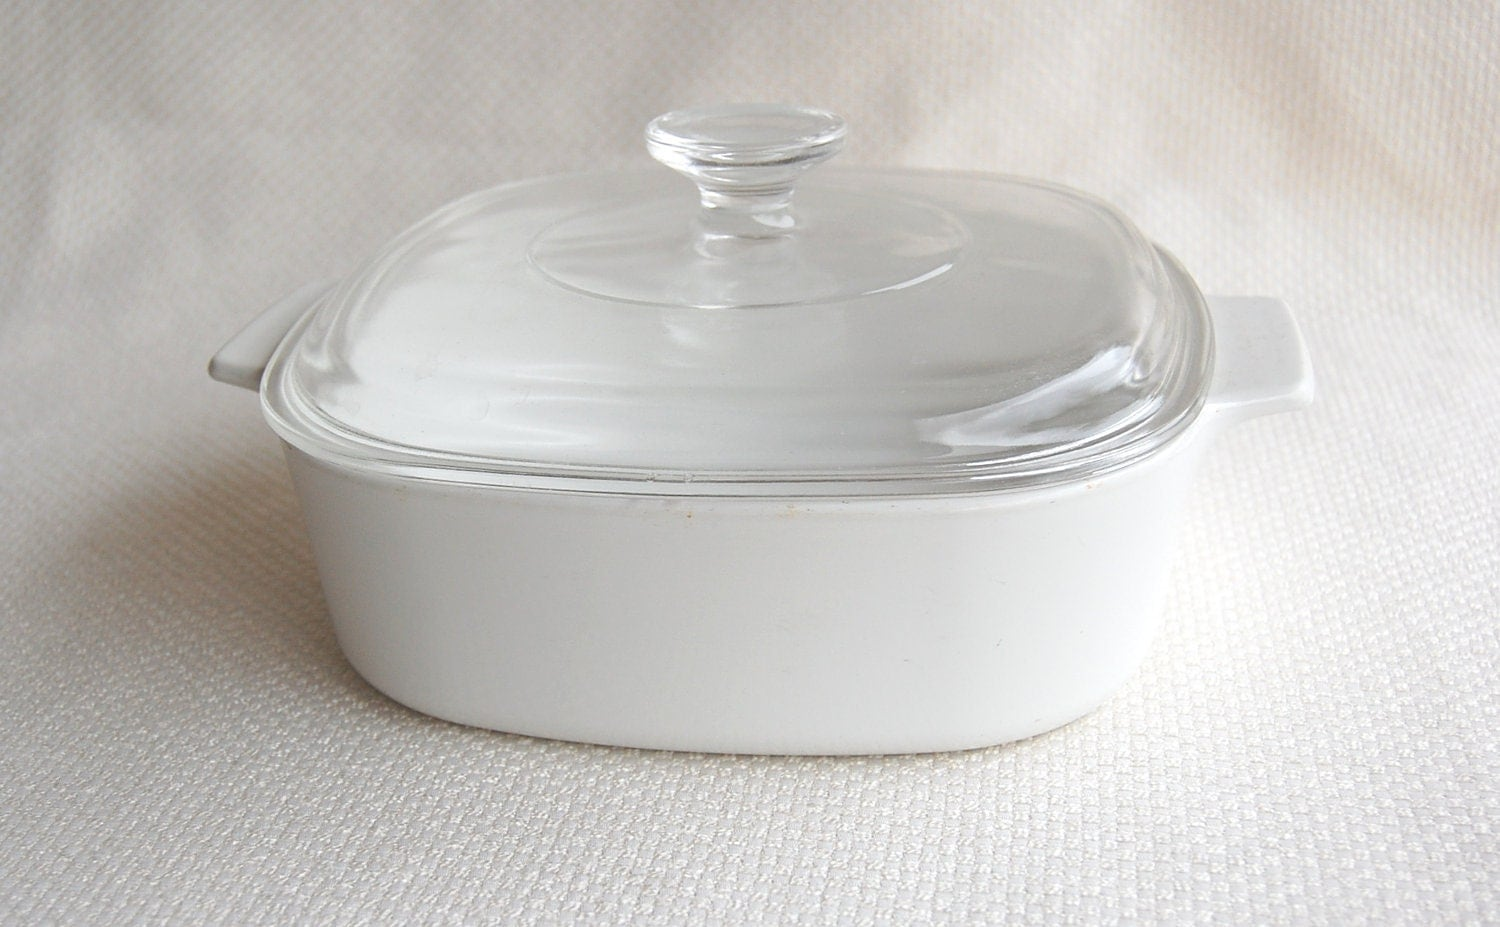 Vintage Corning Ware A 2 B Covered Casserole All White Or Just